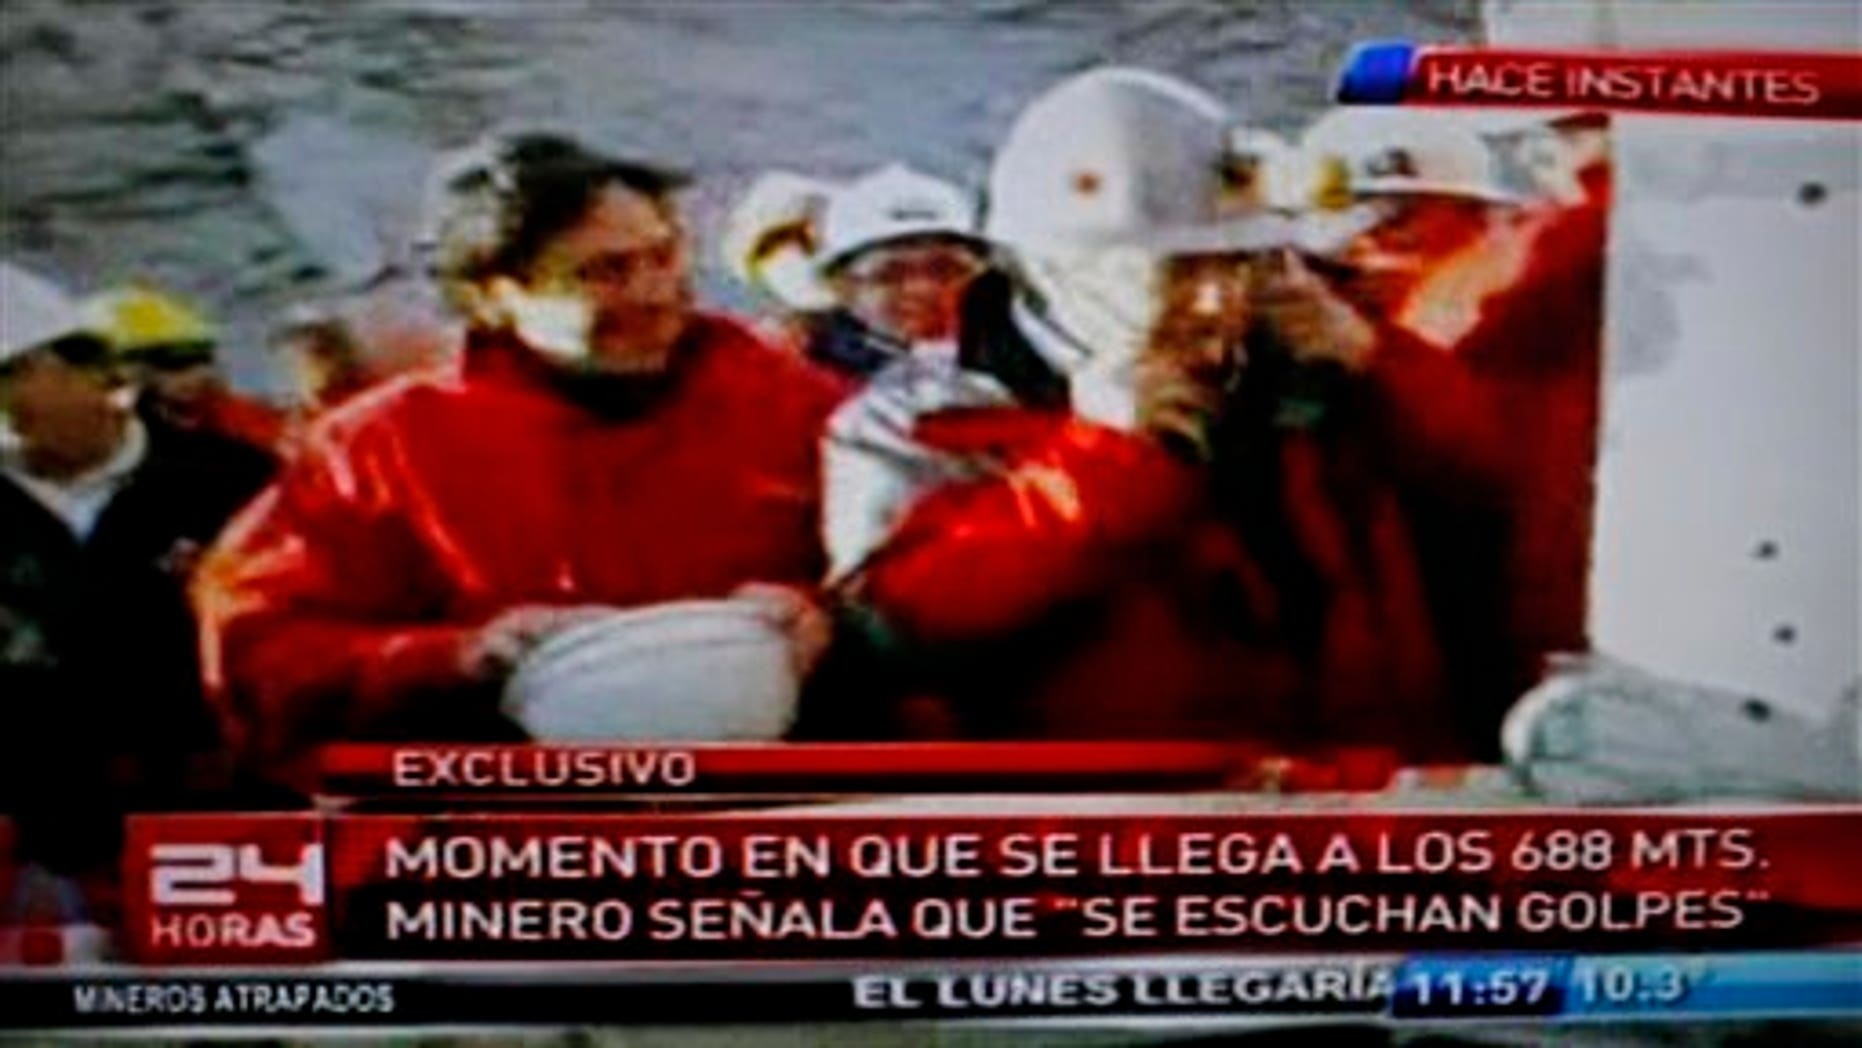 """In this frame grab from TV channel 24 Horas, Chile's Mining Minister Laurence Golborne, left, smiles as an unidentified official listens with a medical oscilloscope to unknown sounds coming from the area of a collapsed mine where about 33 miners have been trapped for 17 days in Copiapo, Chile, Sunday, Aug. 22, 2010.  The miners have been trapped below the surface since the main access collapsed on Aug. 5 due to tons of falling rock.  The text at bottom reads in Spanish """"Moment that it (a drill) reaches 688 meters. Miner indicates that 'knocking is heard'."""" (AP Photo)"""